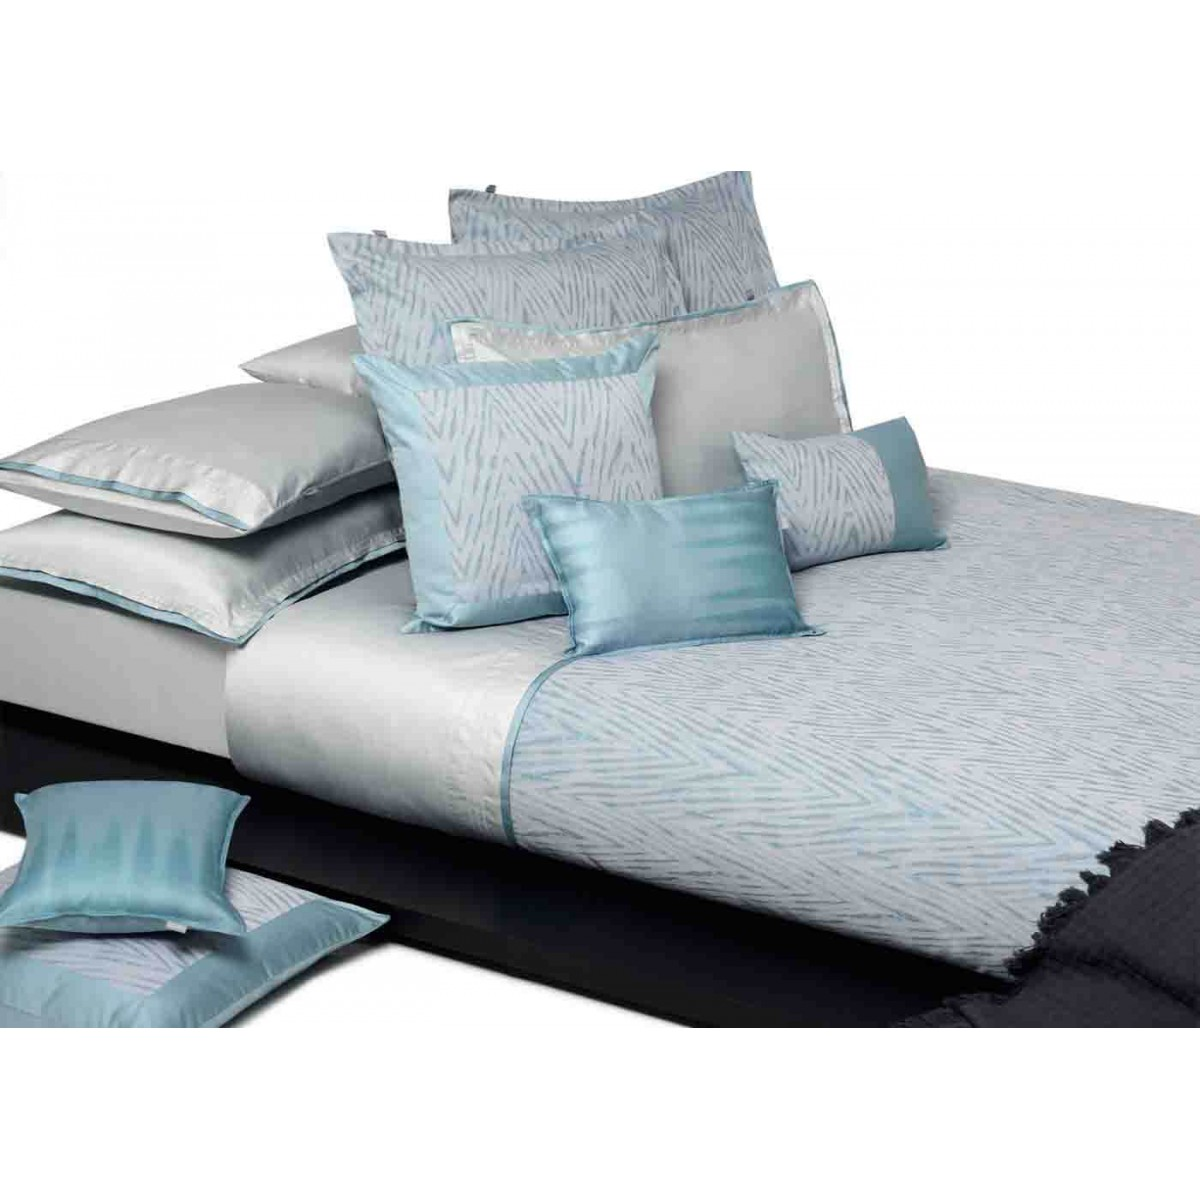 drap housse en coton bleu gris blue mood par home concept. Black Bedroom Furniture Sets. Home Design Ideas